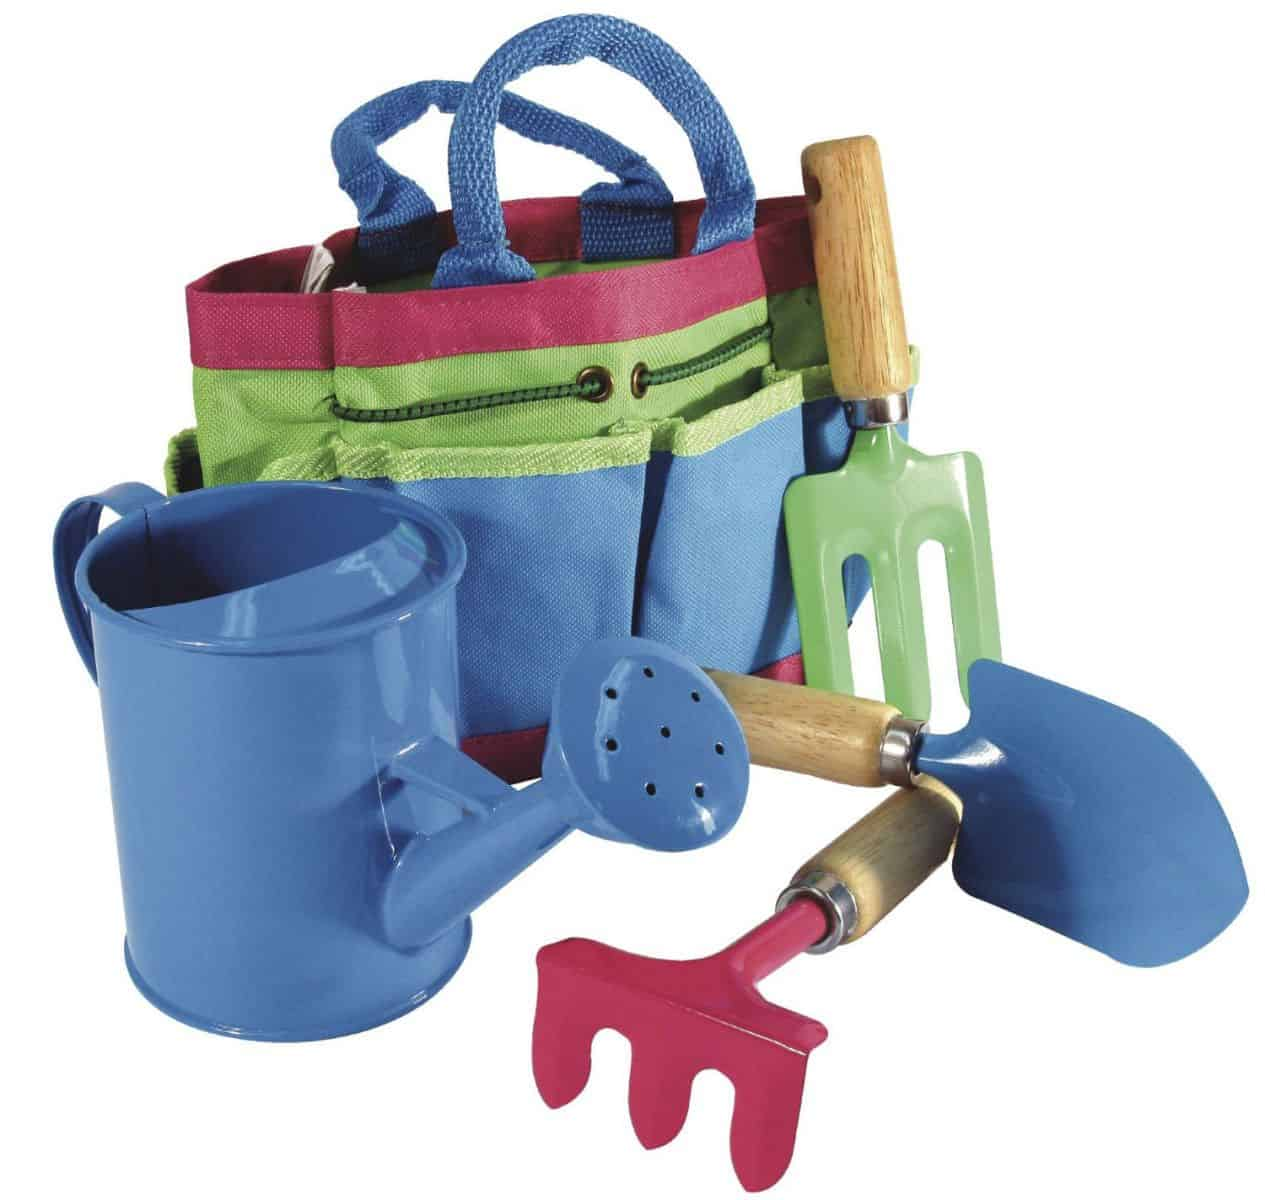 hello wonderful 10 beginner gardening tools for kids